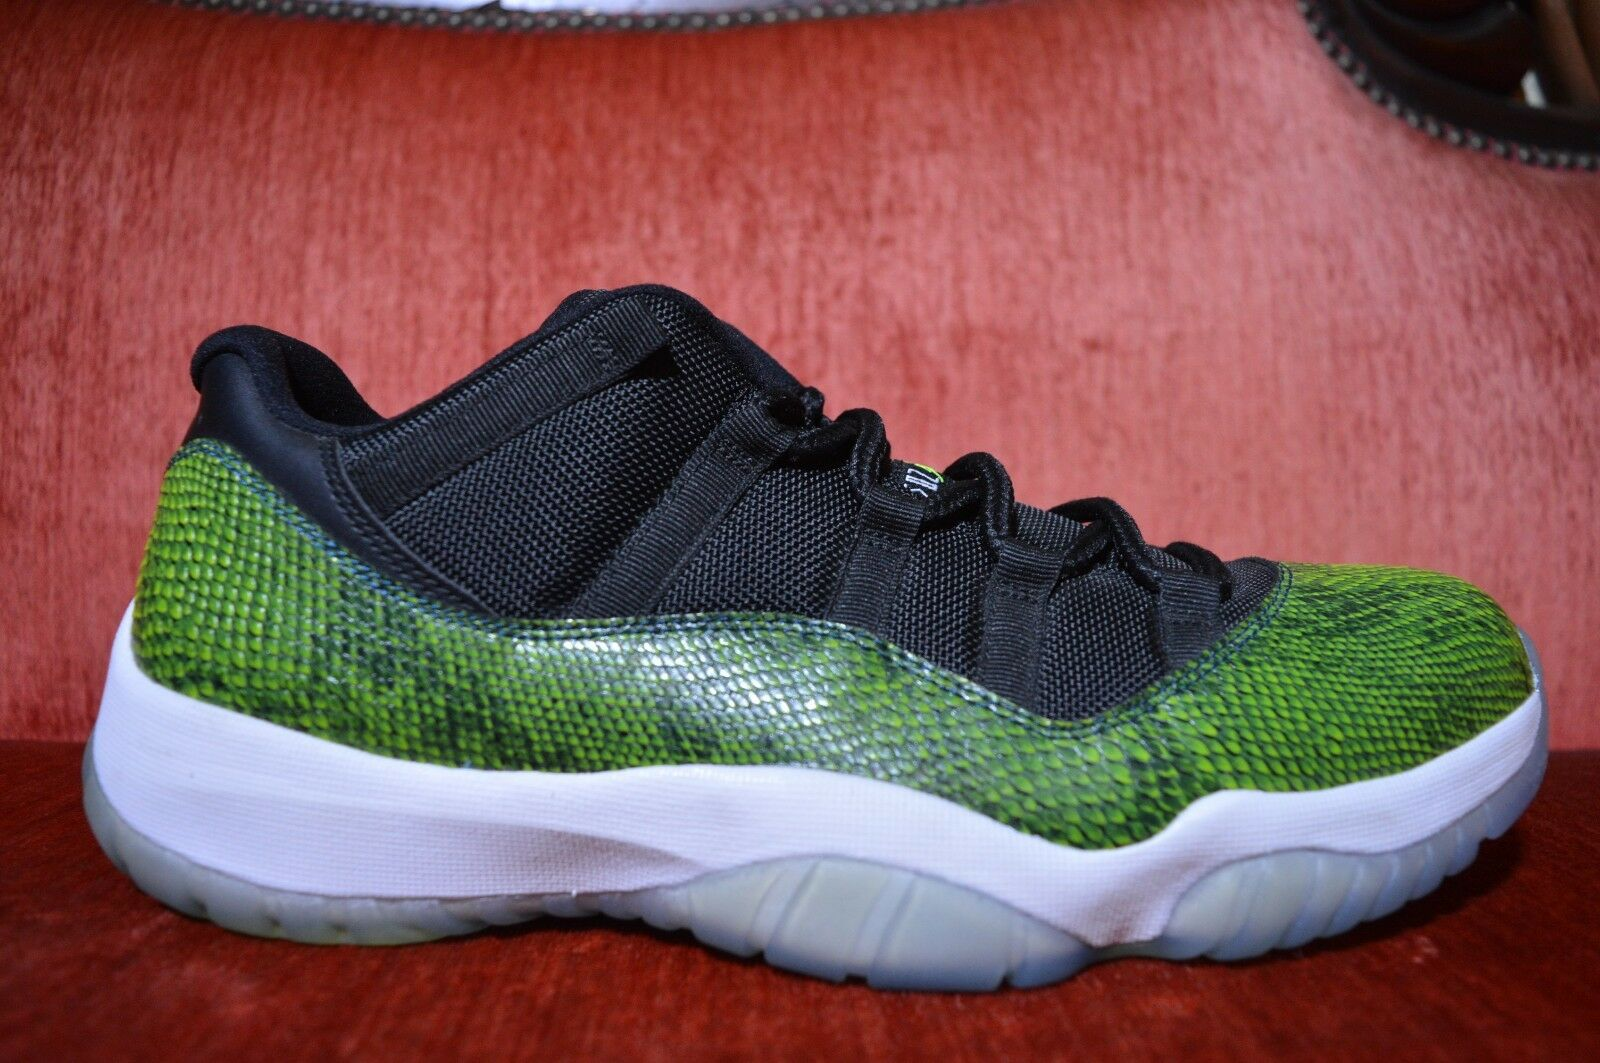 5776c51c021 NEW Nike Air Jordan 11 Retro Low Green Snake Skin 528895 033 Nightshade XI  ntxbev1857-Athletic Shoes